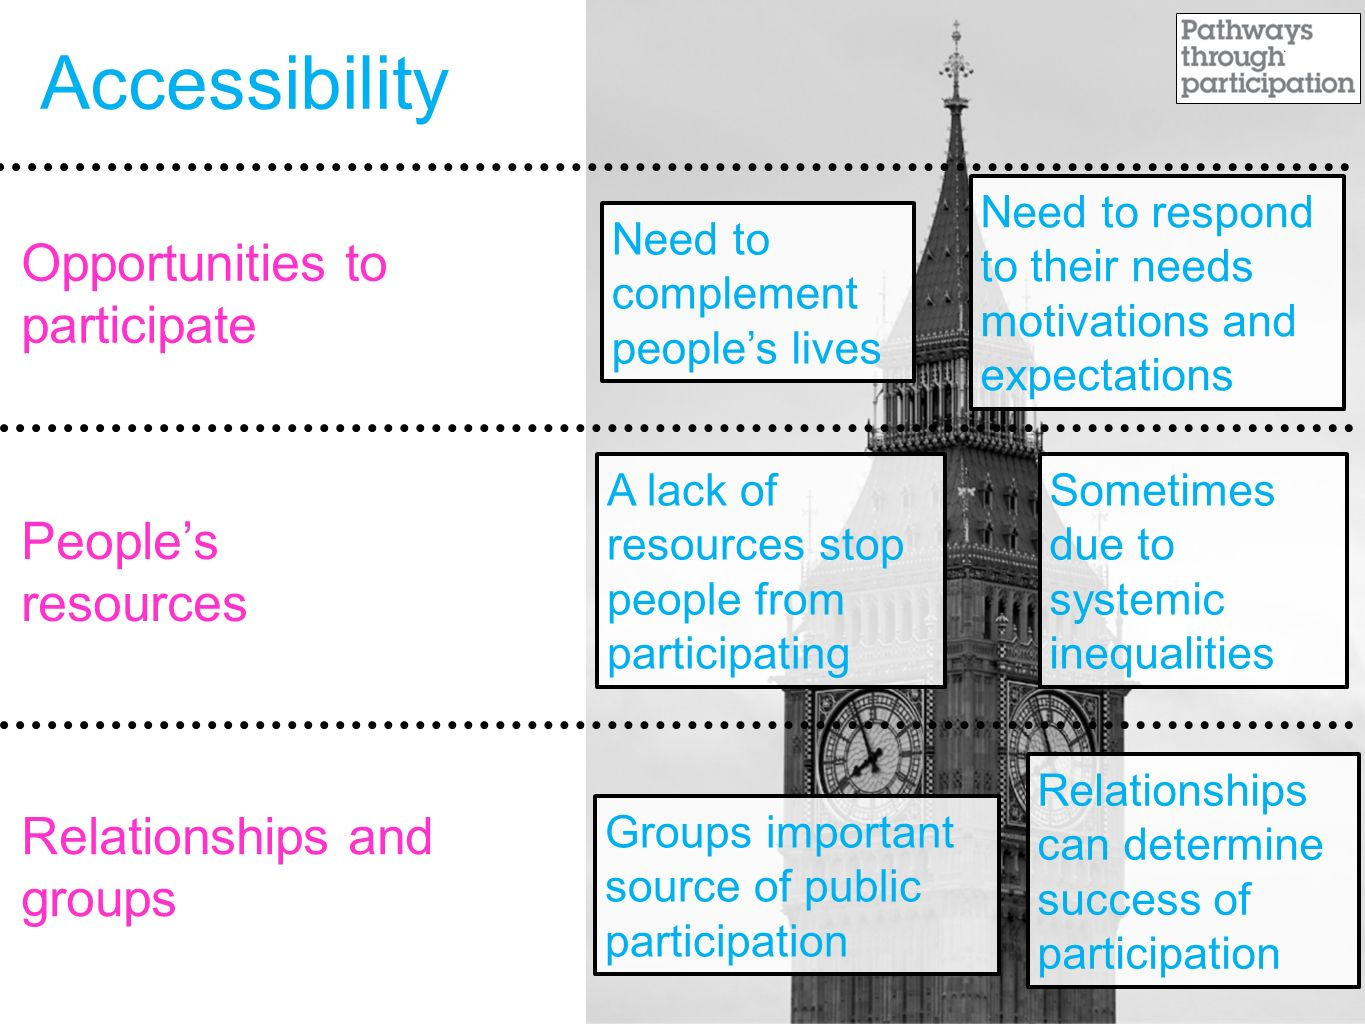 Accessibility Opportunities to participate People's resources Relationships and groups Need to complement people's lives Need to respond to their need